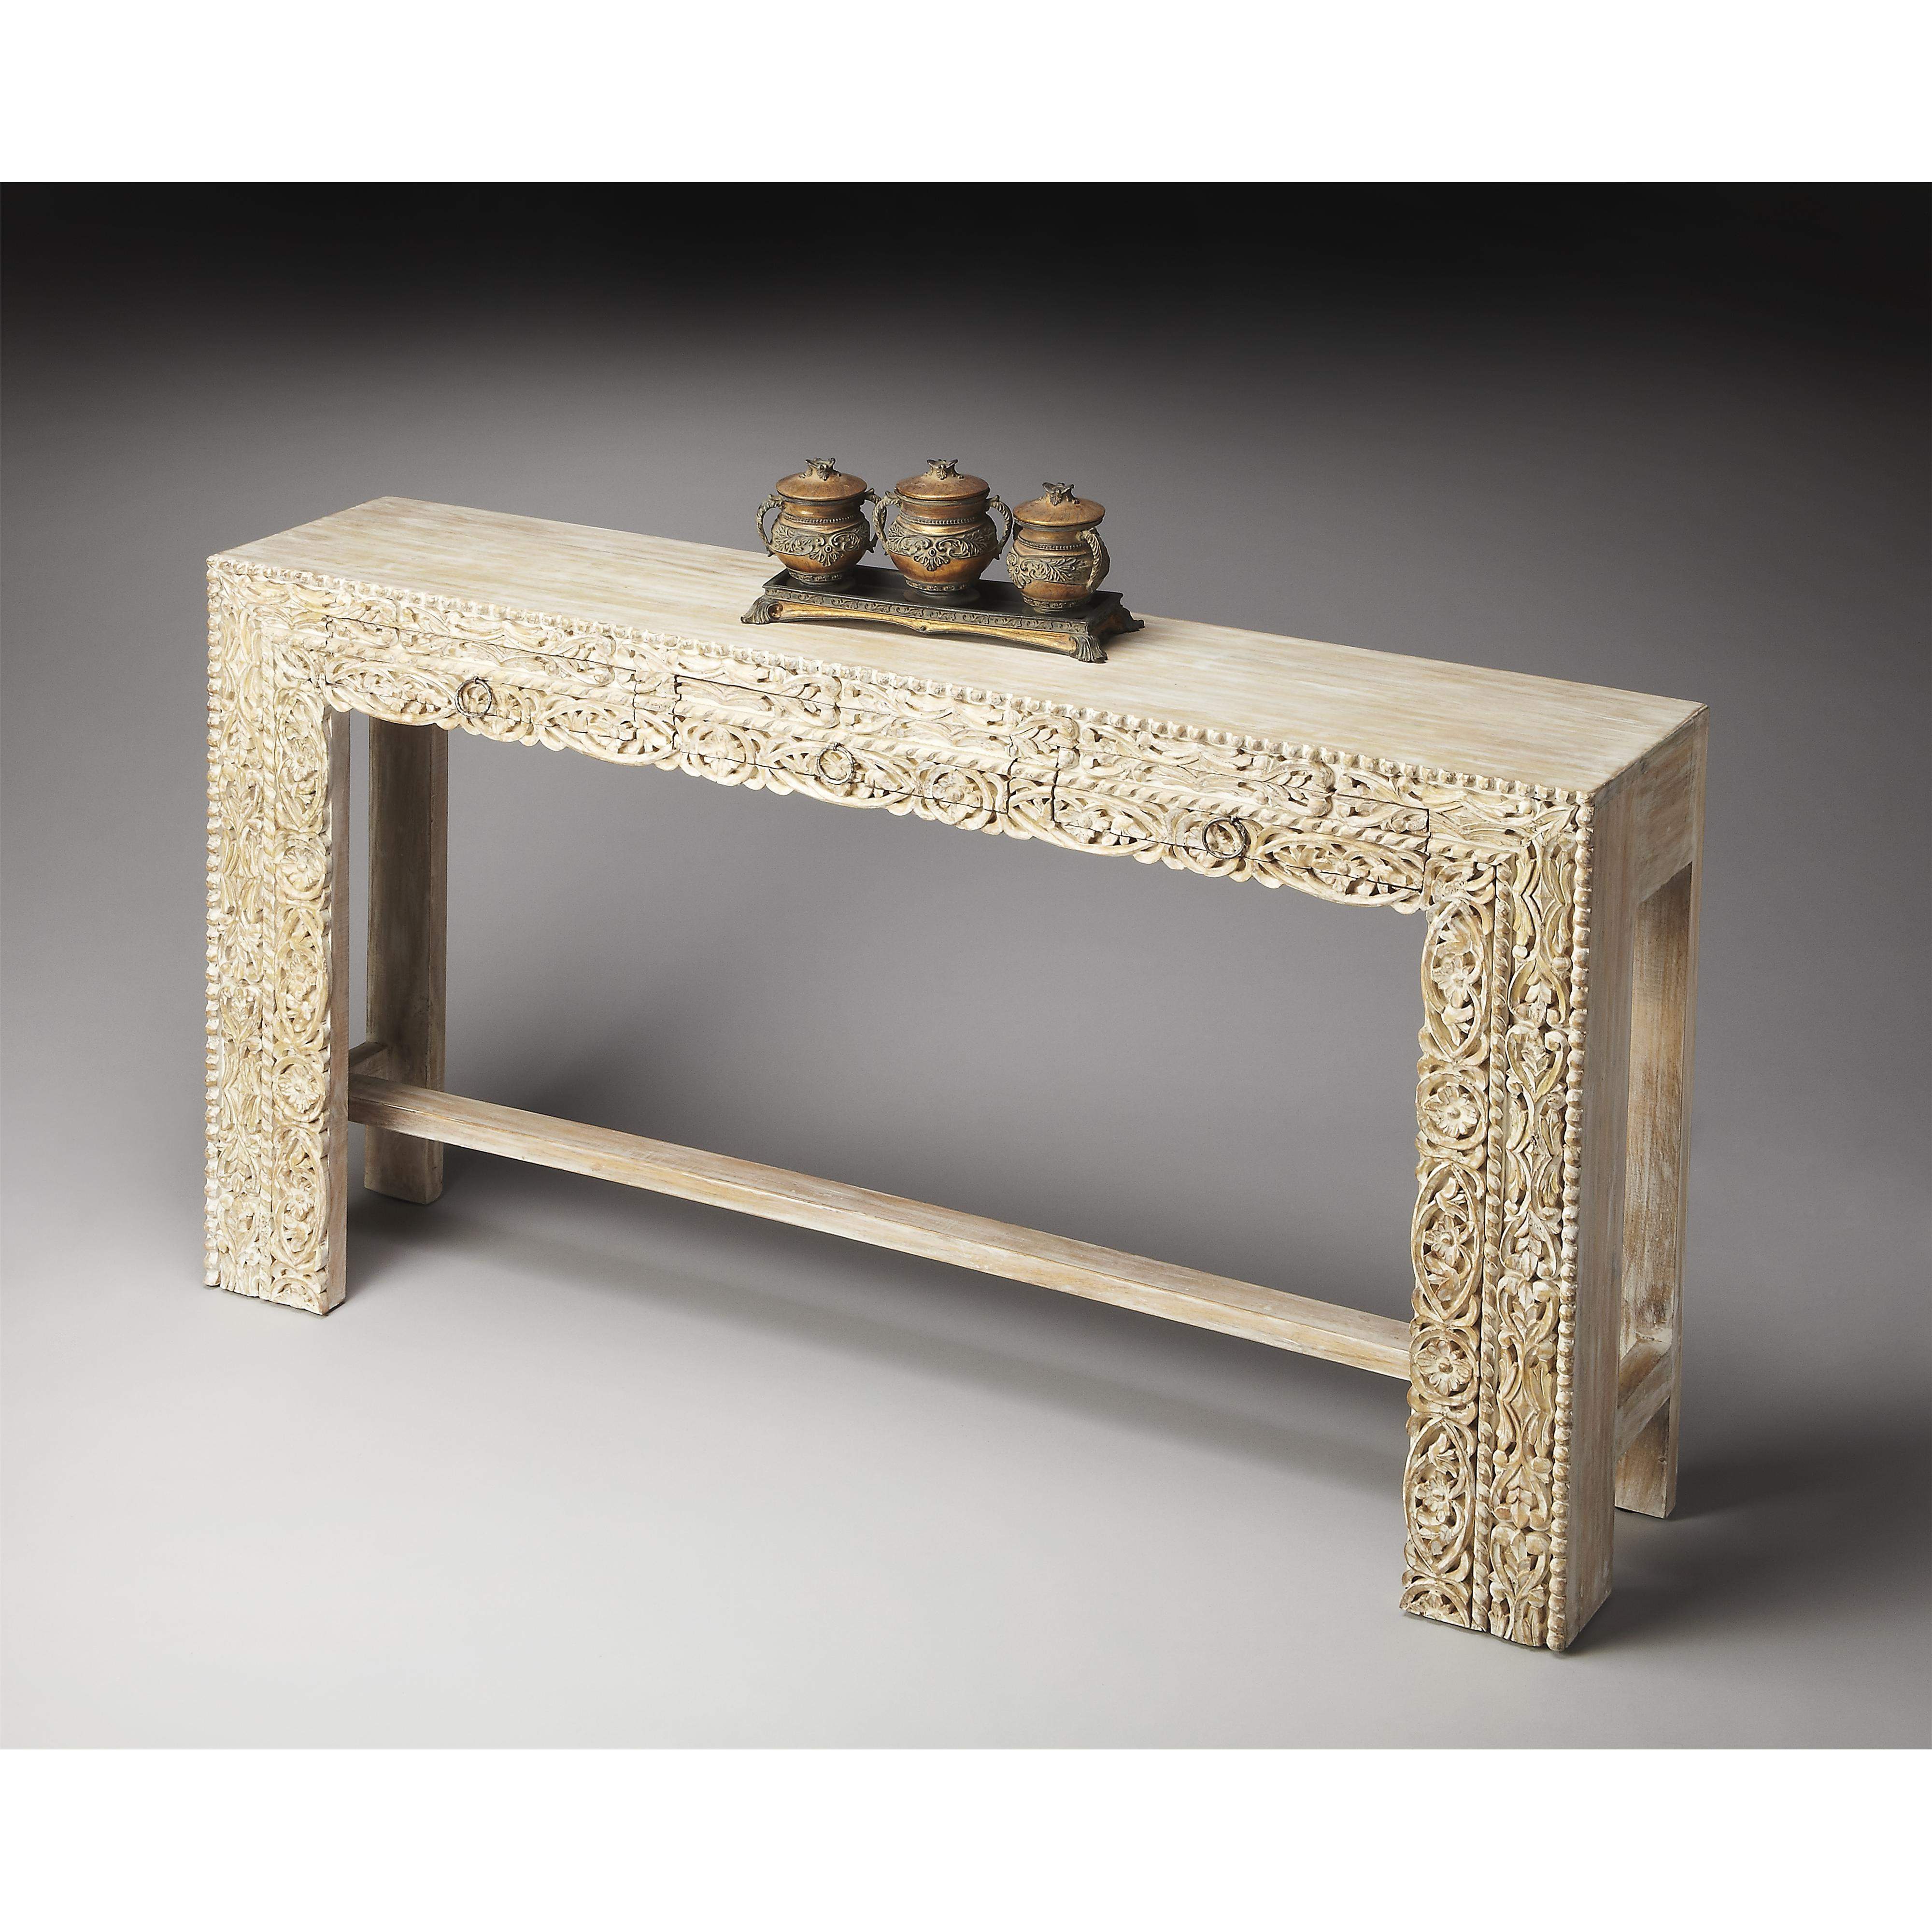 Butler Specialty Company Artifacts Console Table - Item Number: 2069290